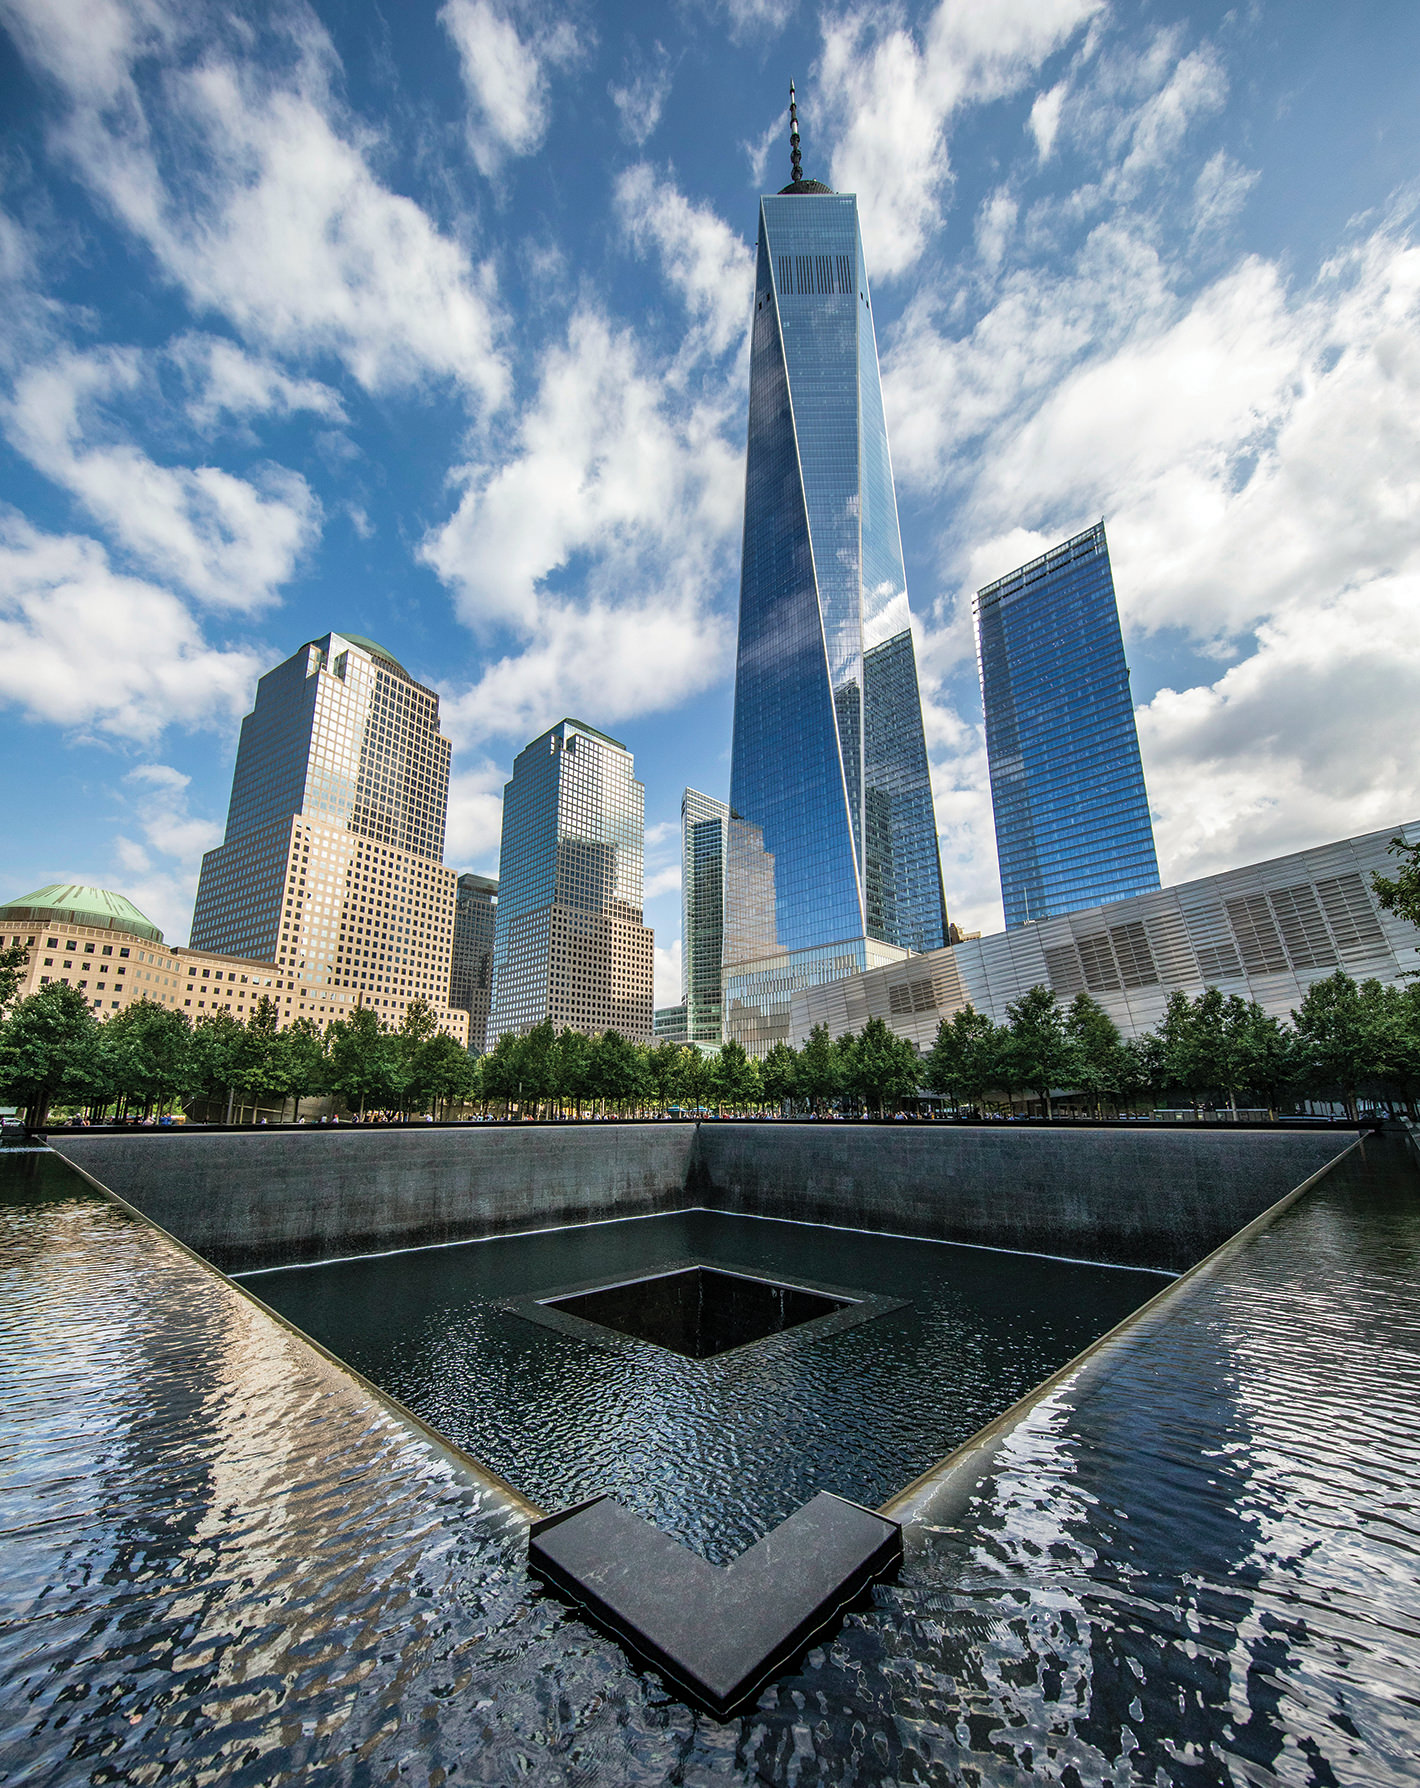 The One World Trade Center building rises above the reflecting pools at the 9/11 Memorial in Lower Manhattan.